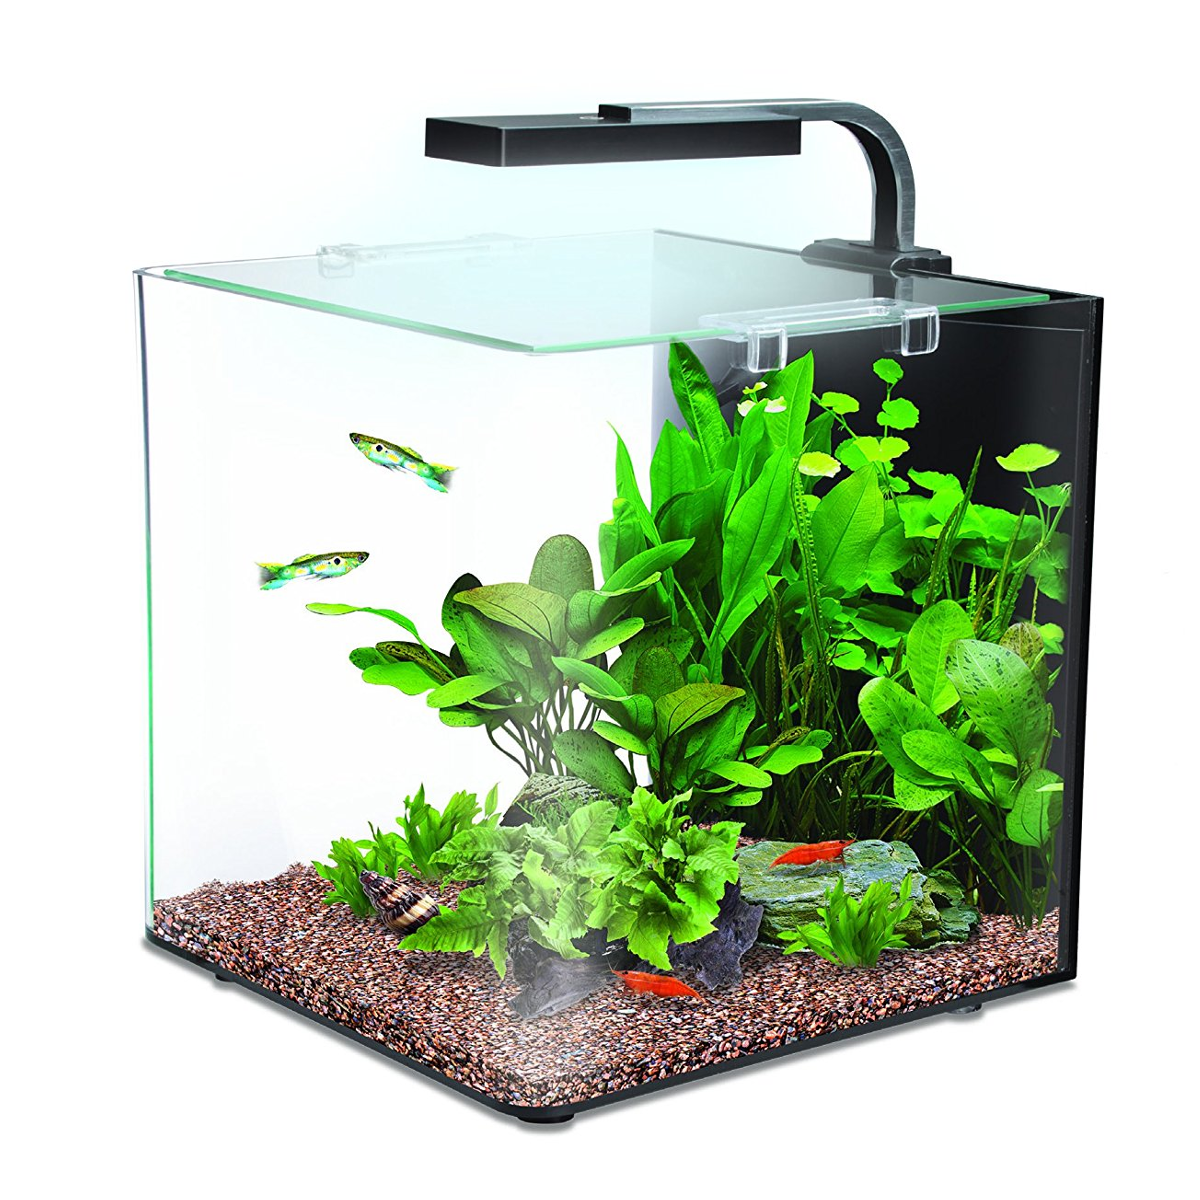 complete interpet nano led 12 litre aquarium fish tank tropical starter kit set. Black Bedroom Furniture Sets. Home Design Ideas